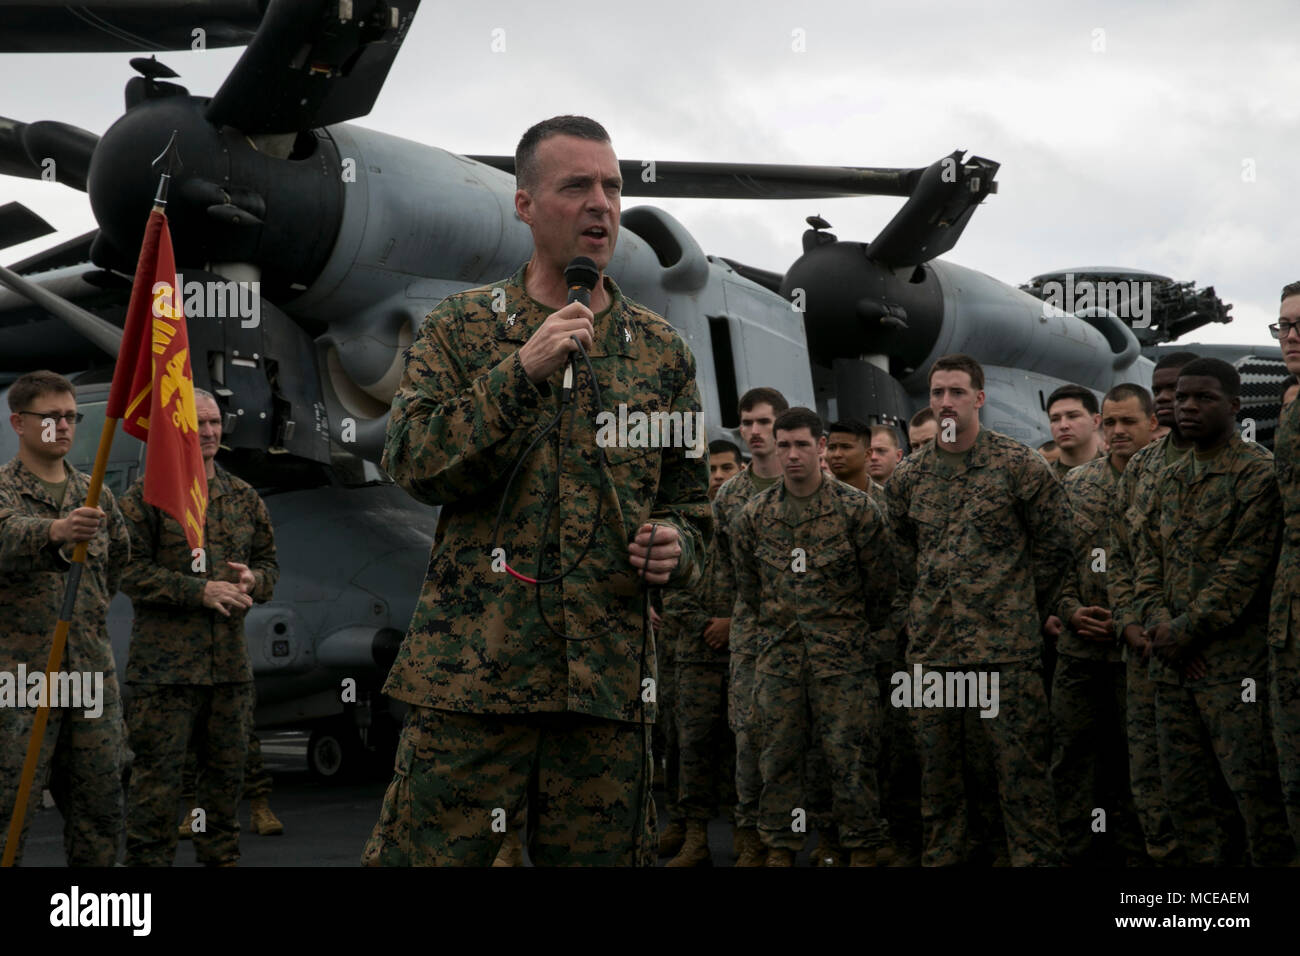 tye r wallace commanding officer of the 31st marine expeditionary unit speaks to marines and sailors during an all hands formation aboard the uss wasp